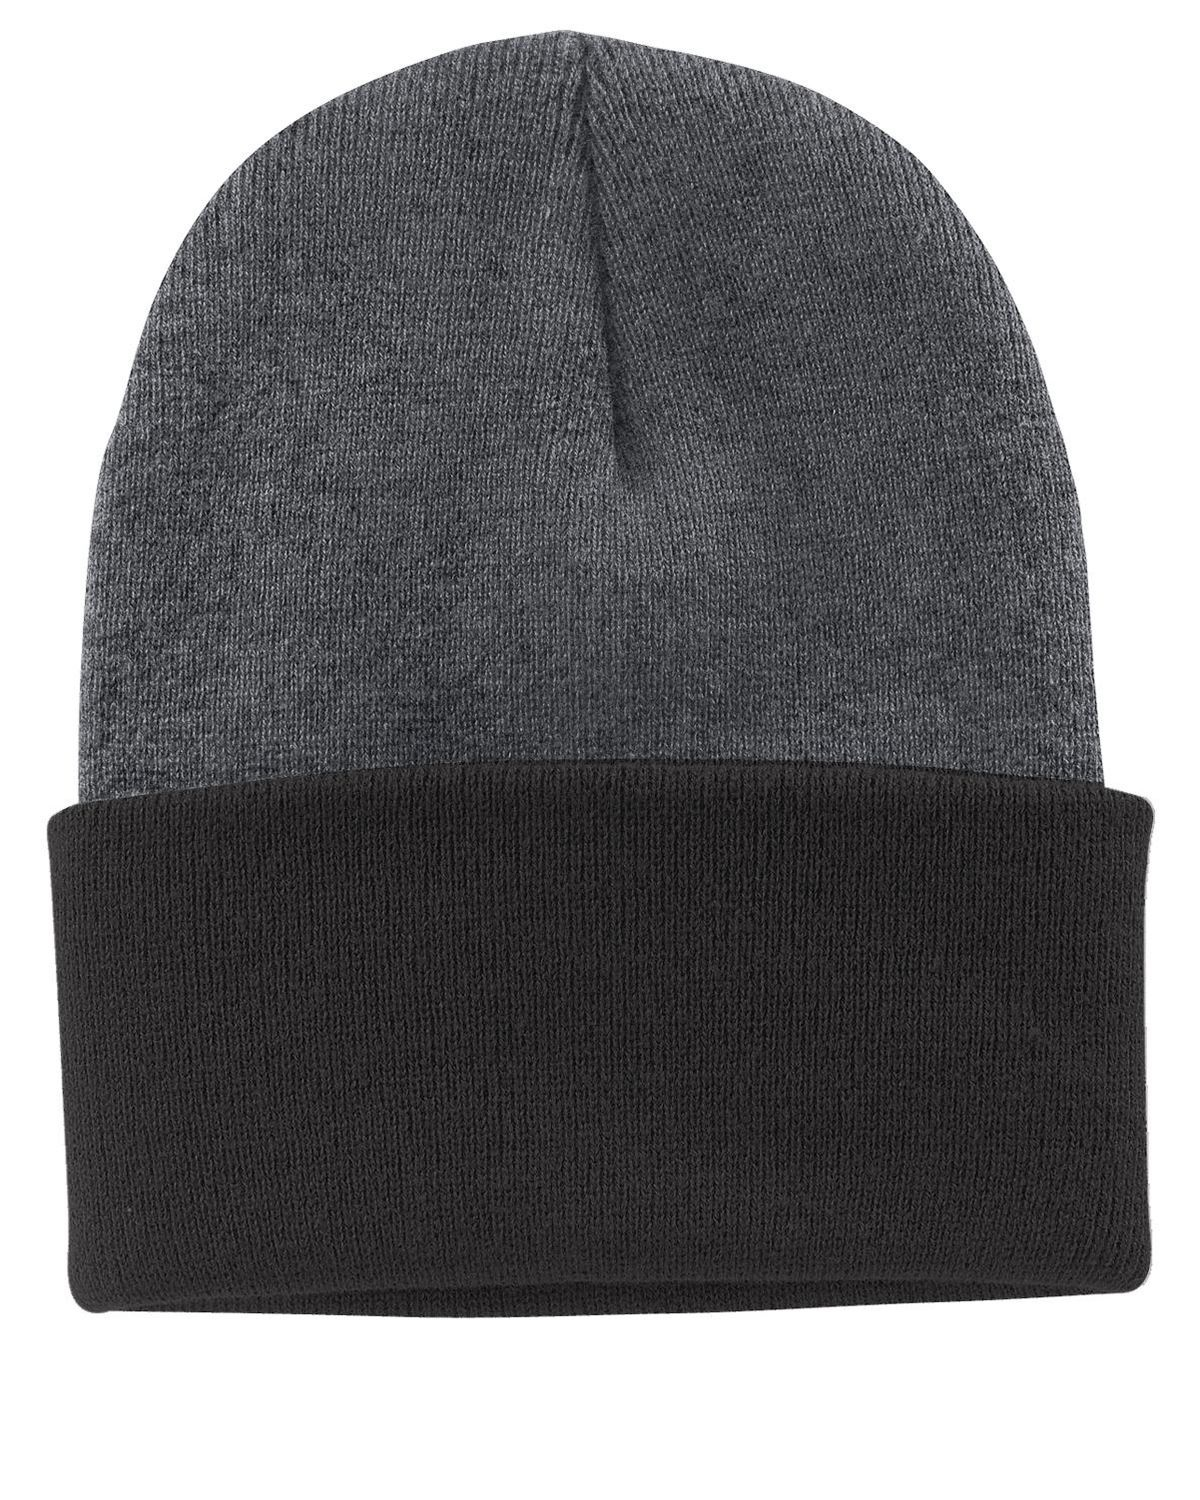 'Port & Company CP90 Knit Cap'